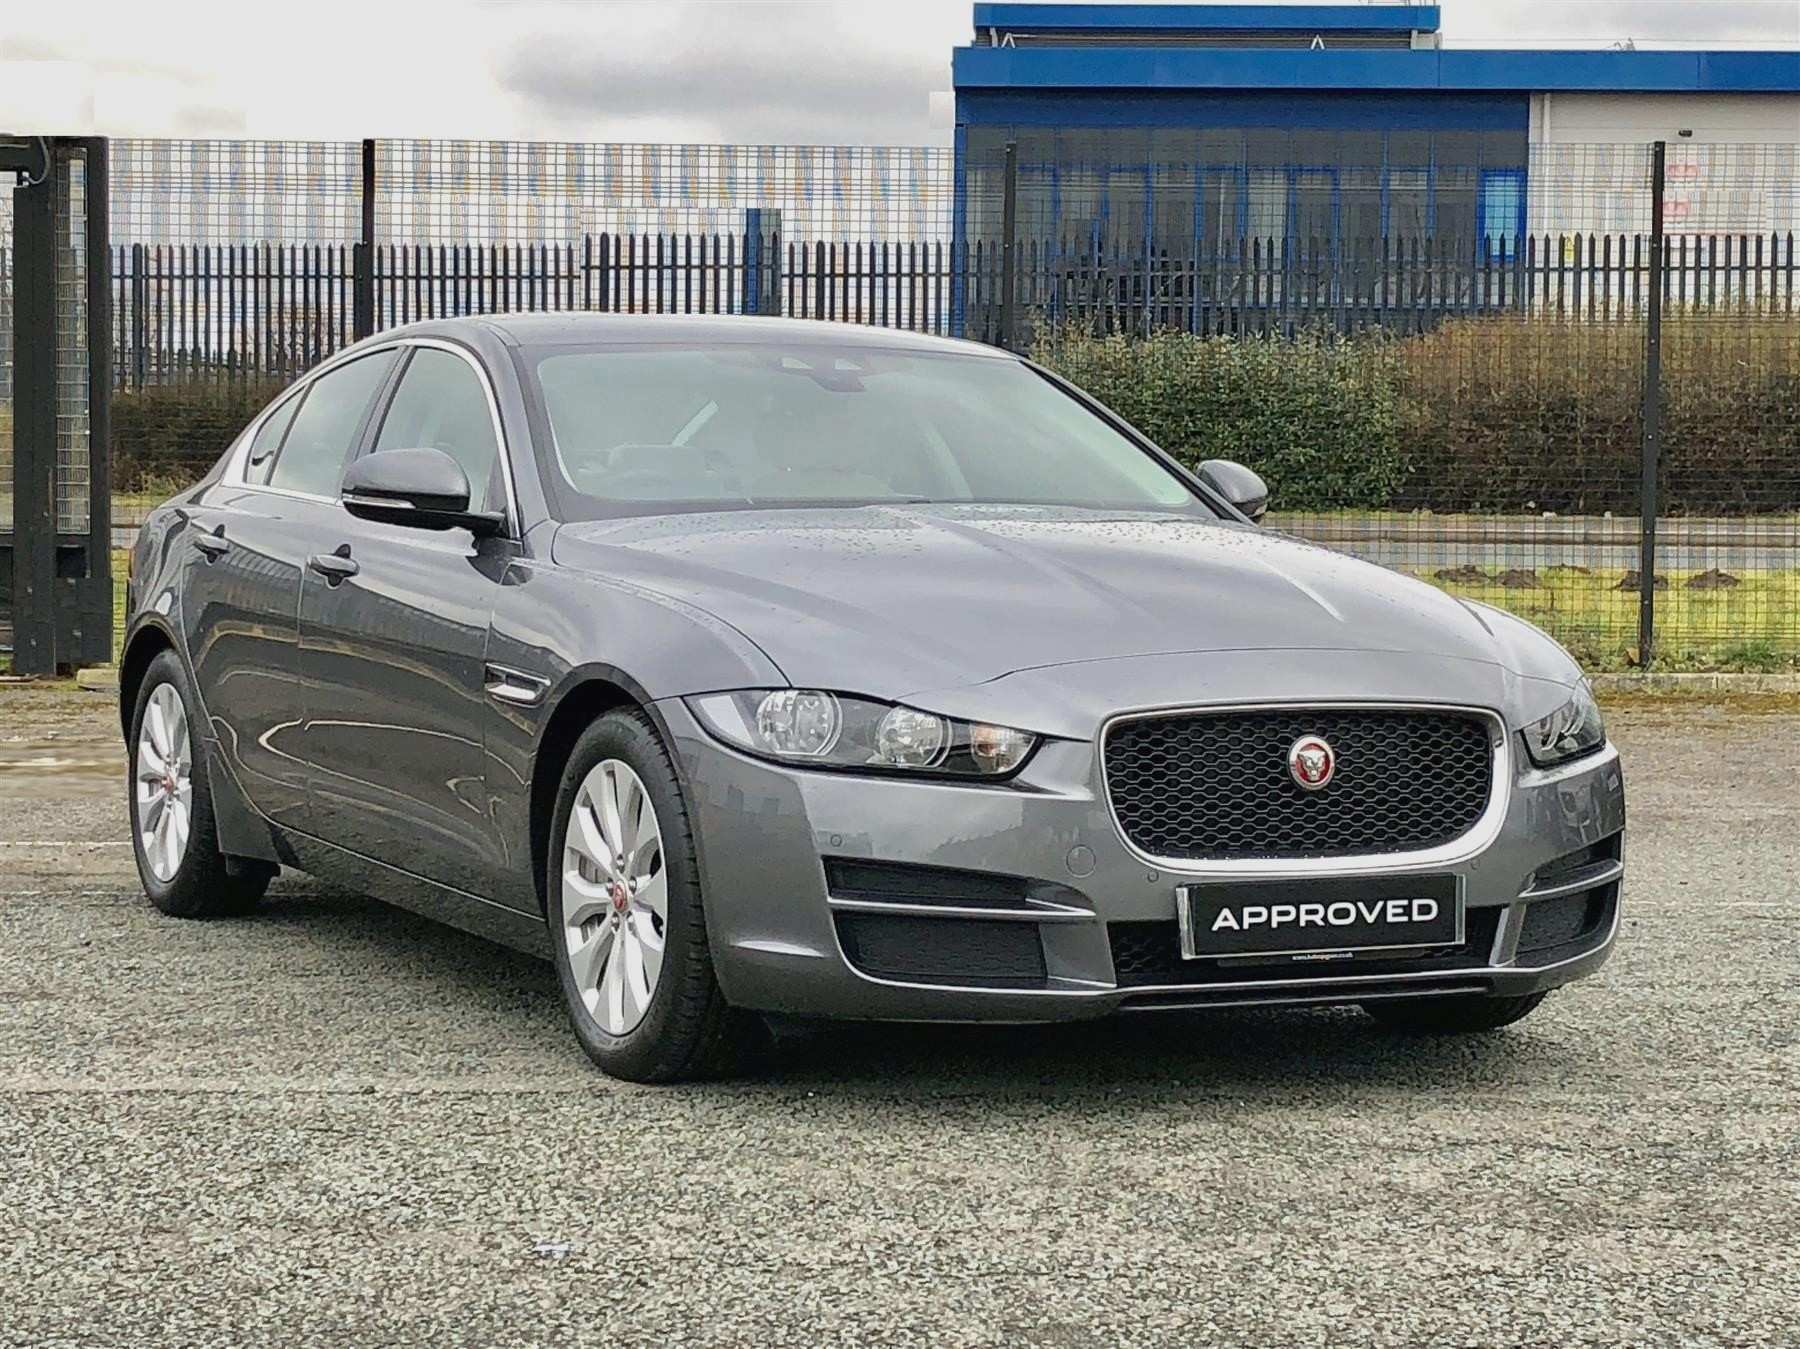 Pictures for Sale Awesome Nice Cars 2017 Wondrous Classy Used 2017 Jaguar Xe 2 0d Prestige 4dr